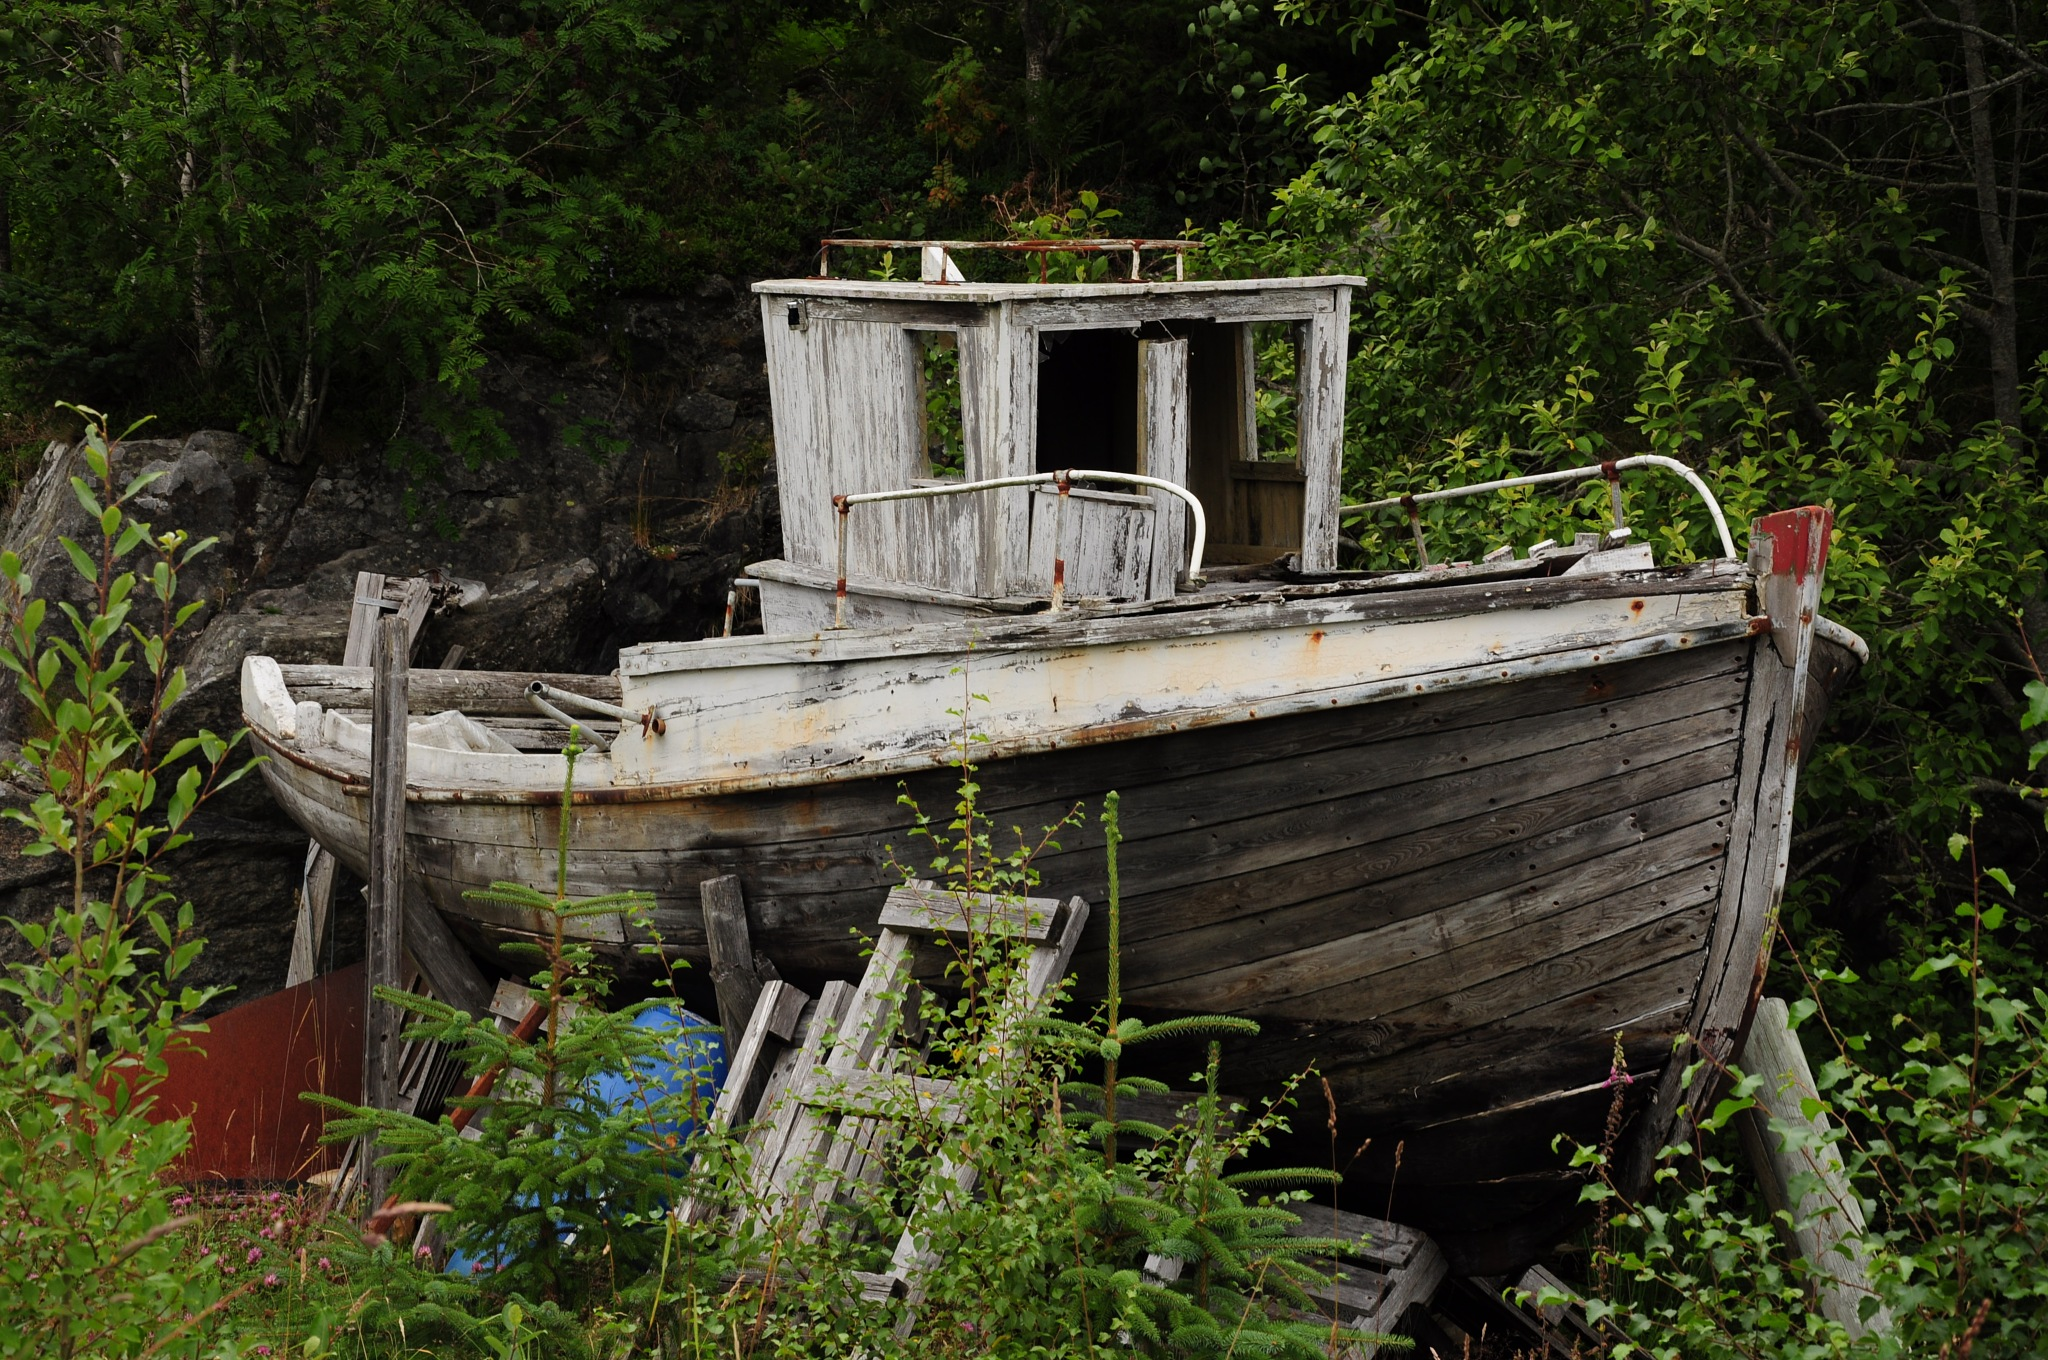 Retired, not usable on sea anymore. by Per Molvik